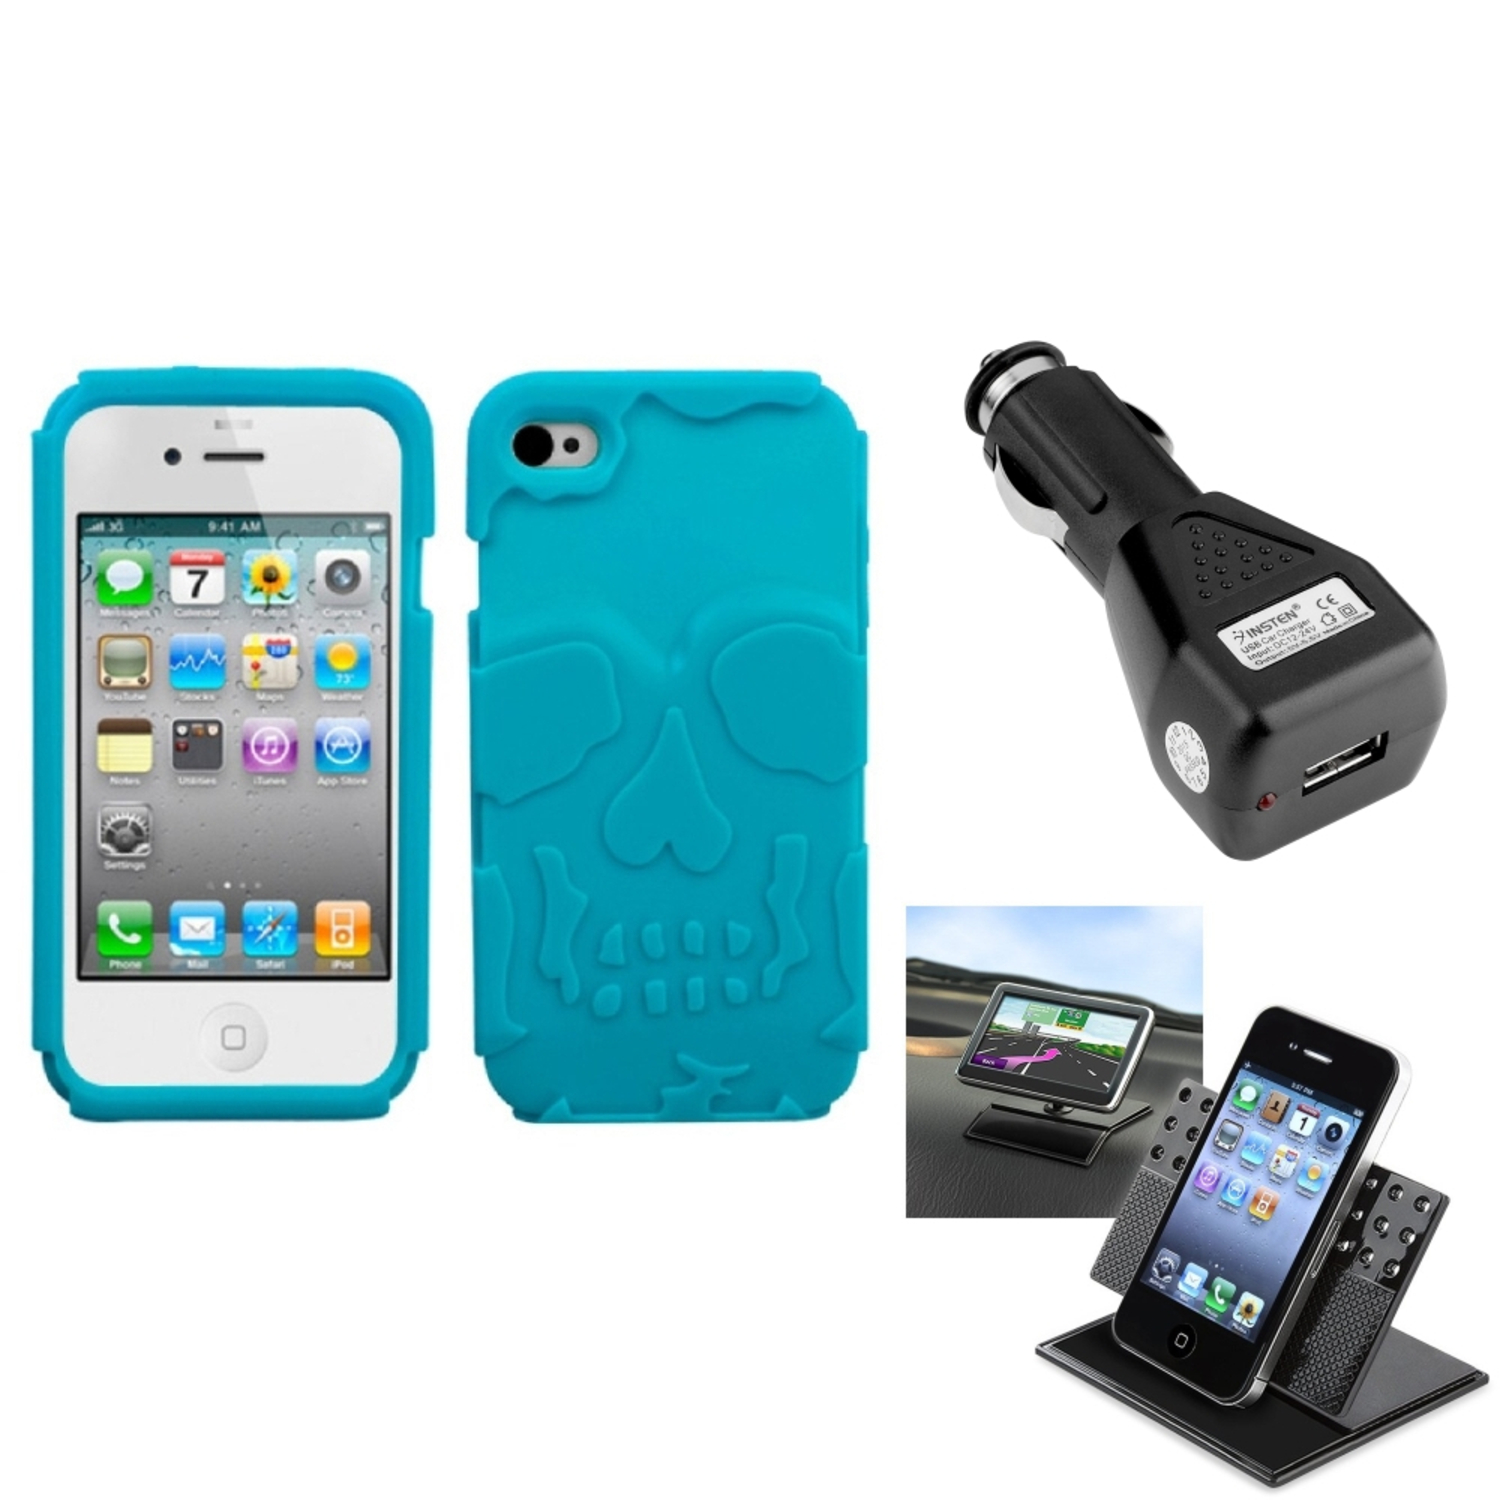 Insten Car Charger Holder Tropical Teal Green Skullcap Base Hybrid Case Cover For iPhone 4S/4